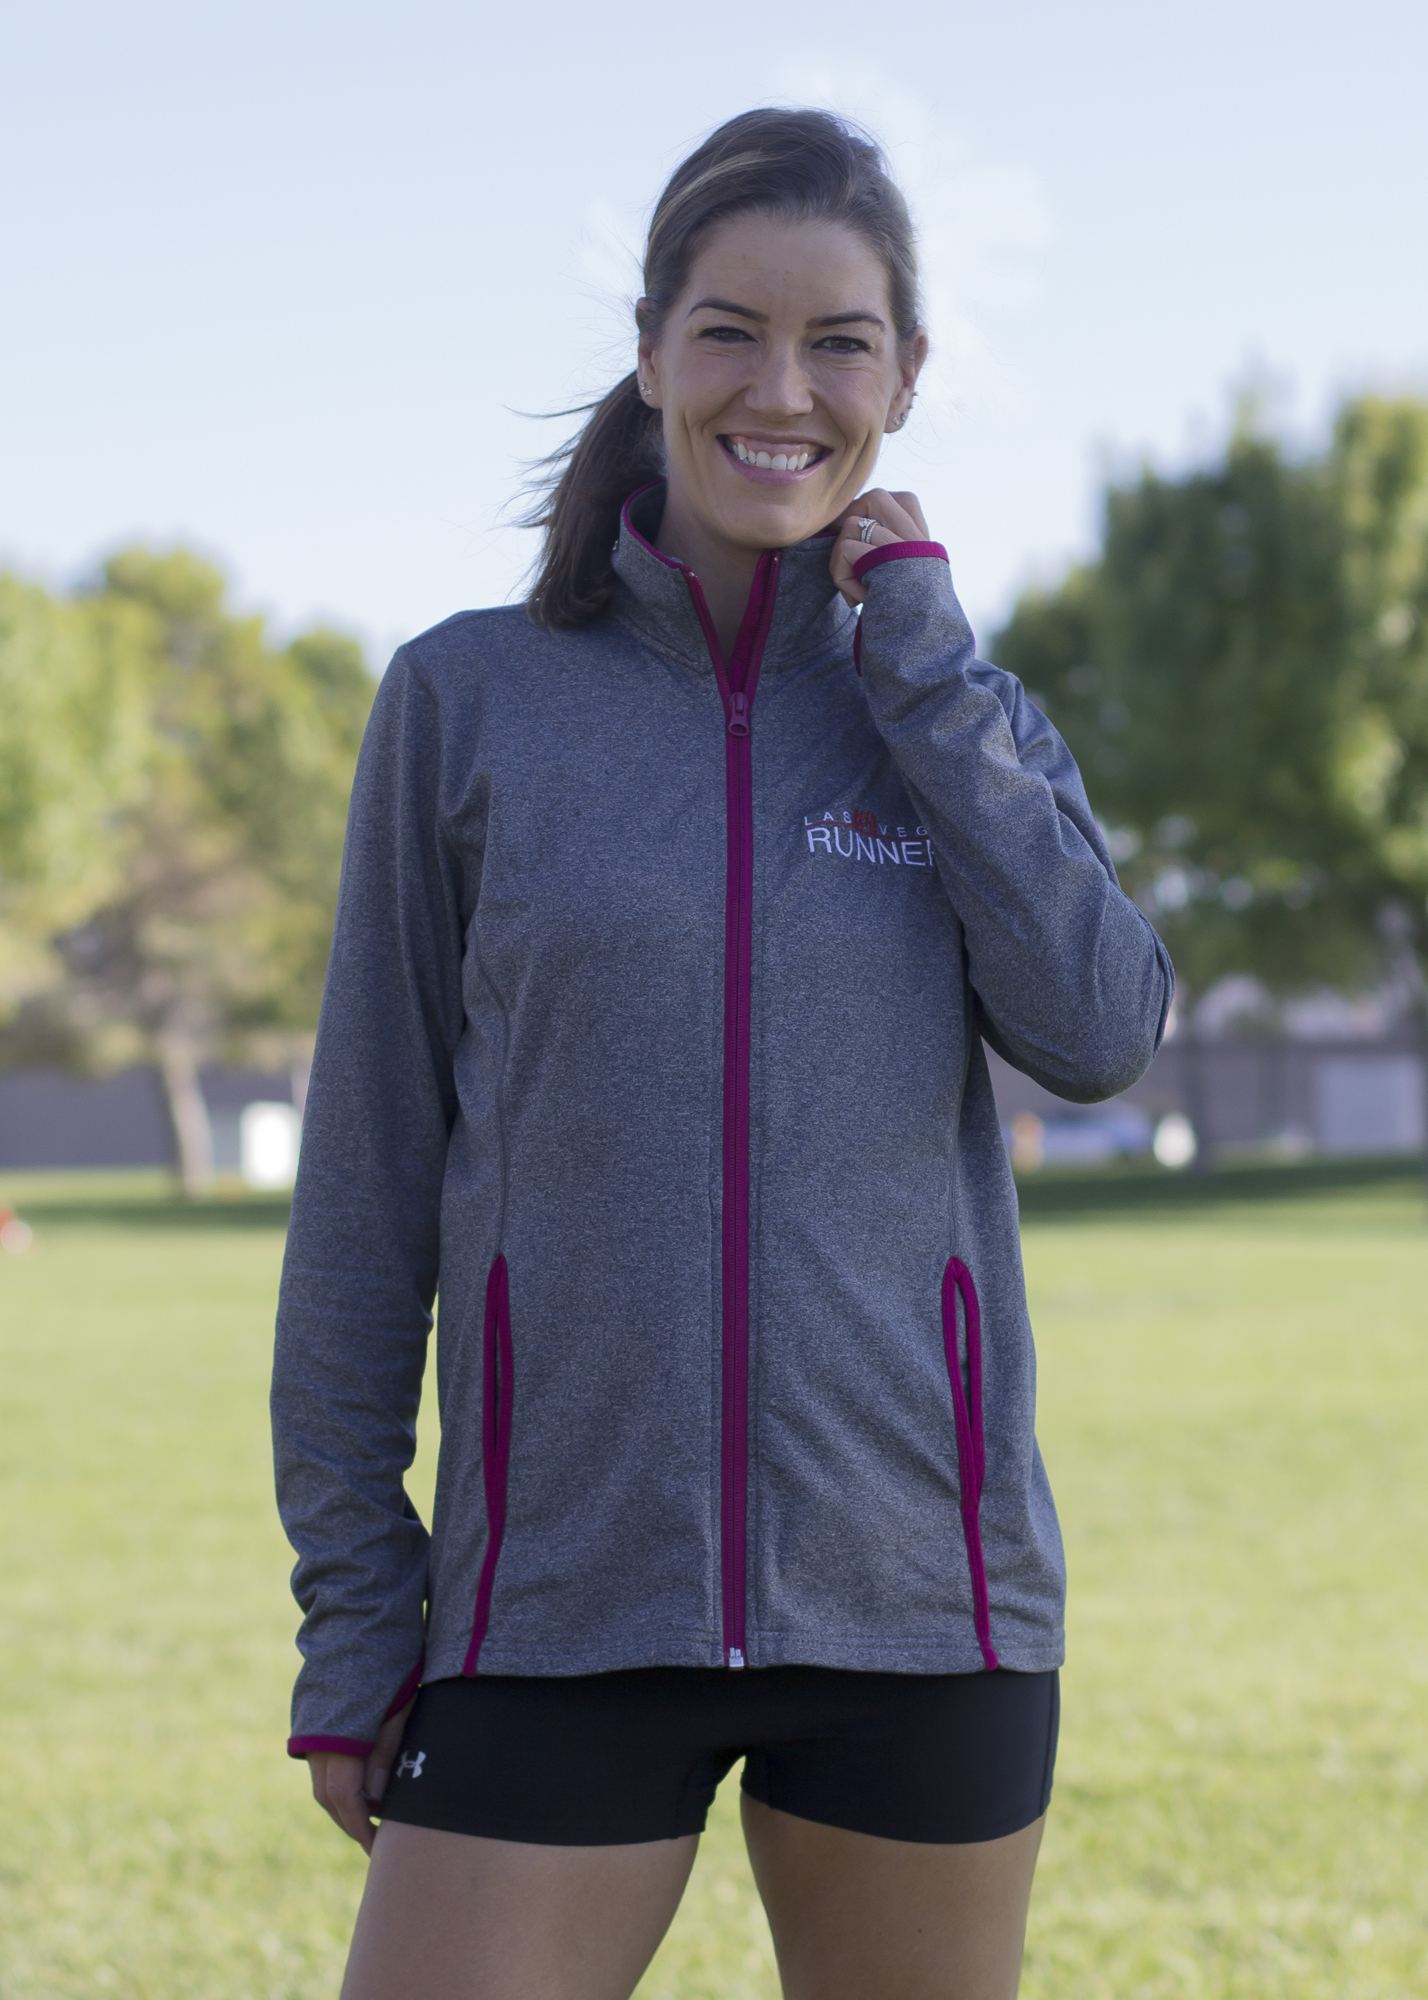 Sport Tek Ladies Sport Wick Stretch Contrast Full Zip Jacket Las Vegas Runners Look sharp in affordable high performance apparel. sport tek ladies sport wick stretch contrast full zip jacket